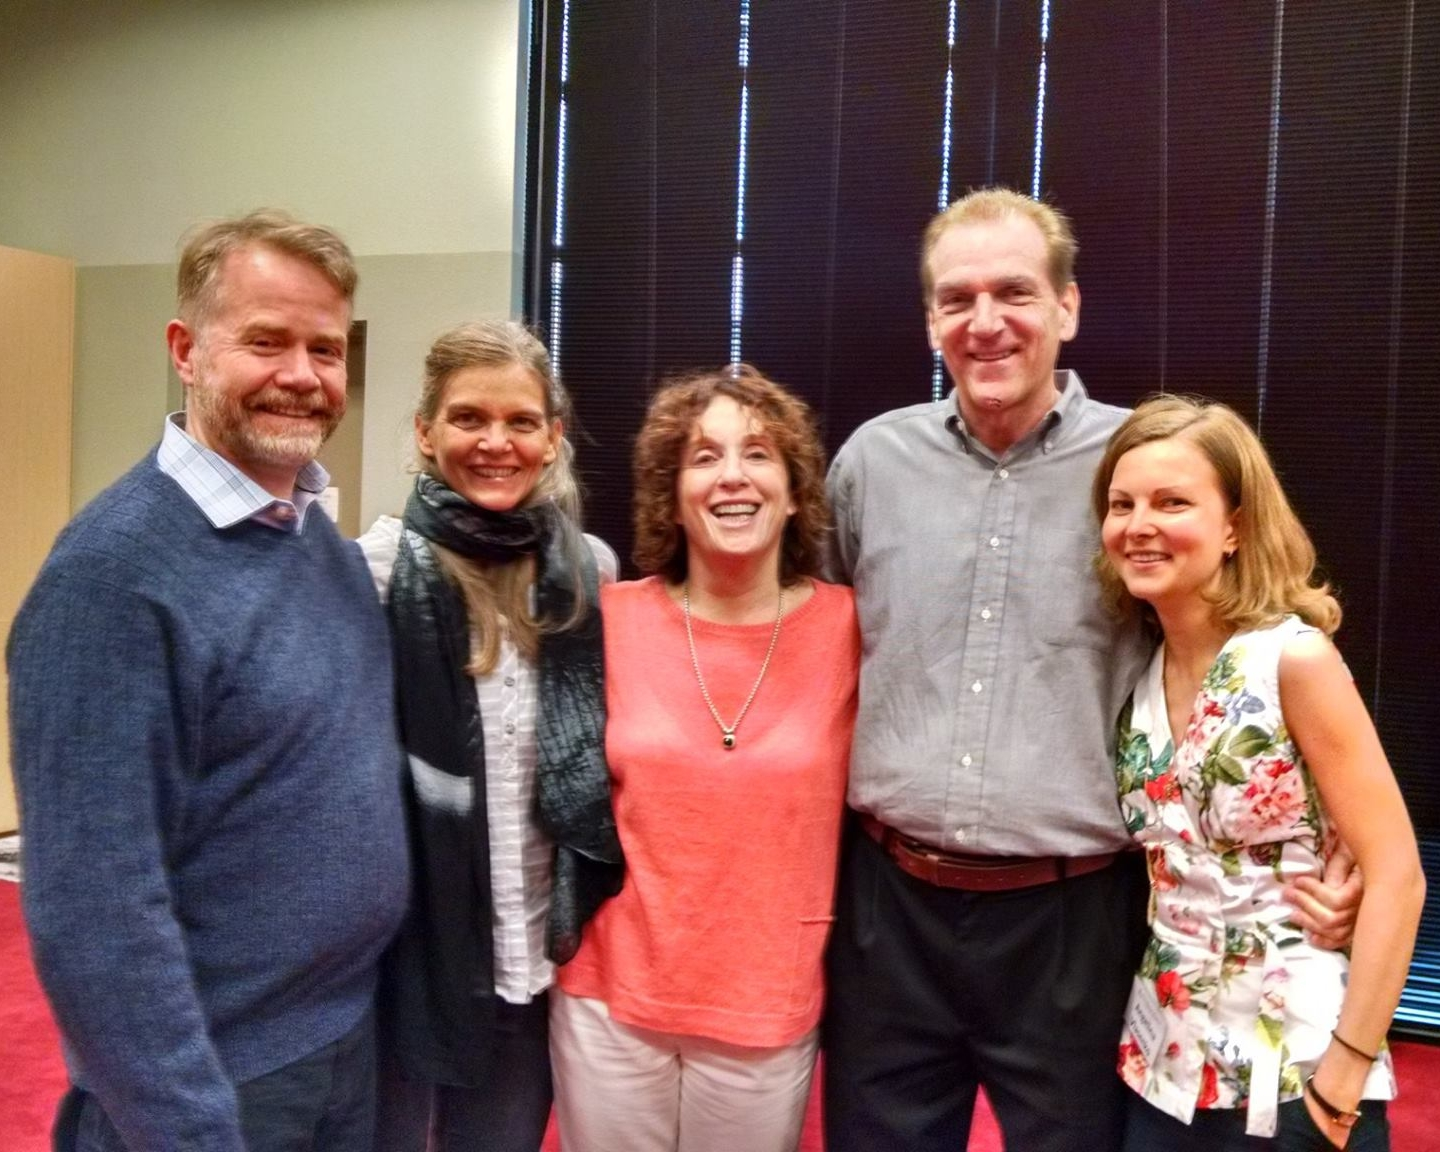 Neil Sharp, Birgit Jung-Schmitt, Anat Baniel, JR Smith, Angelina Vlasenko. Celebrating Graduation from the Anat Baniel Method NeuroMovement Professional Training.